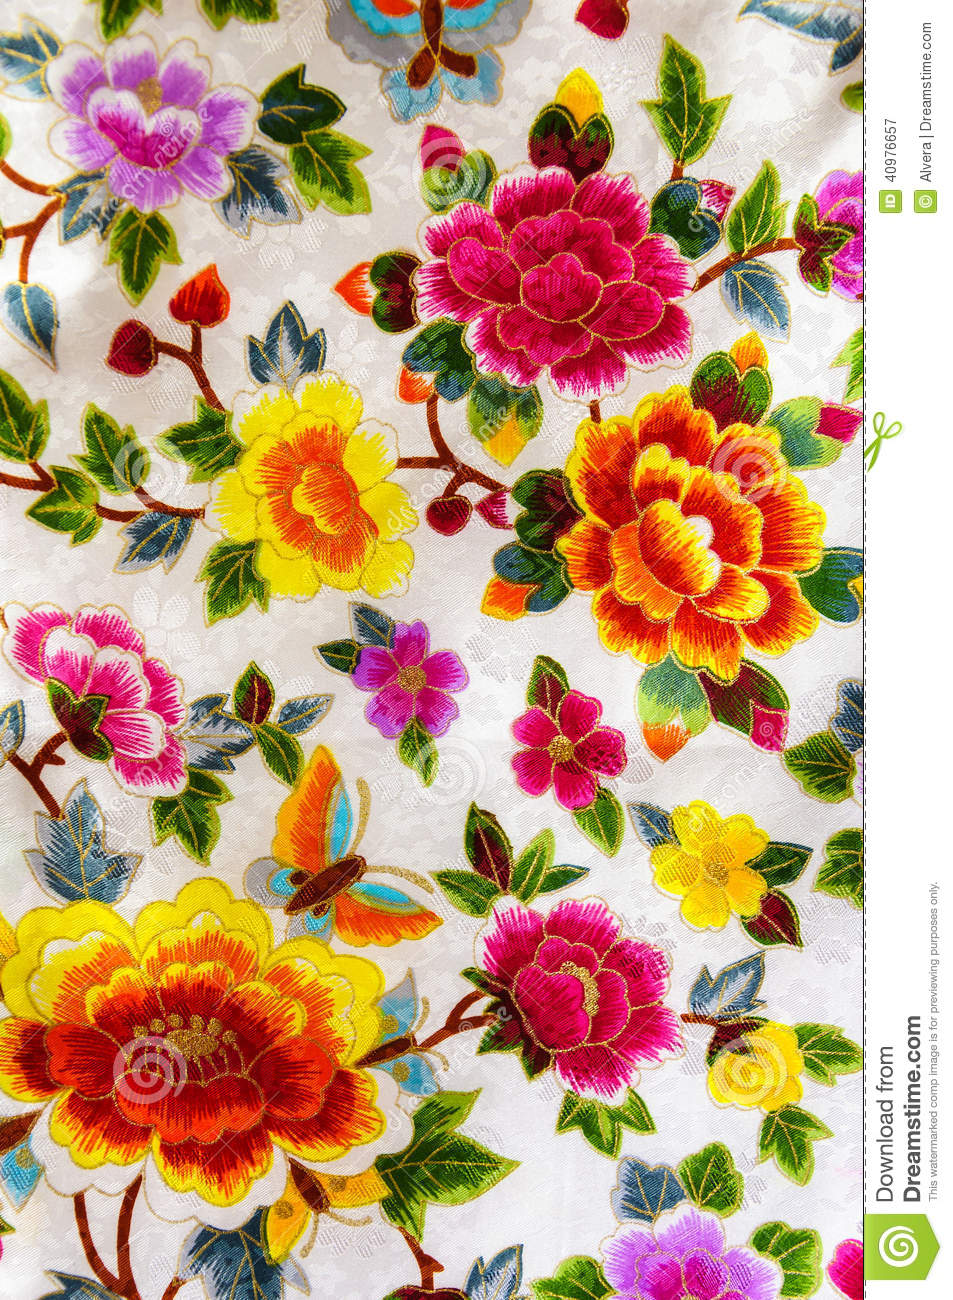 silk embroidery flowers stock image image of special